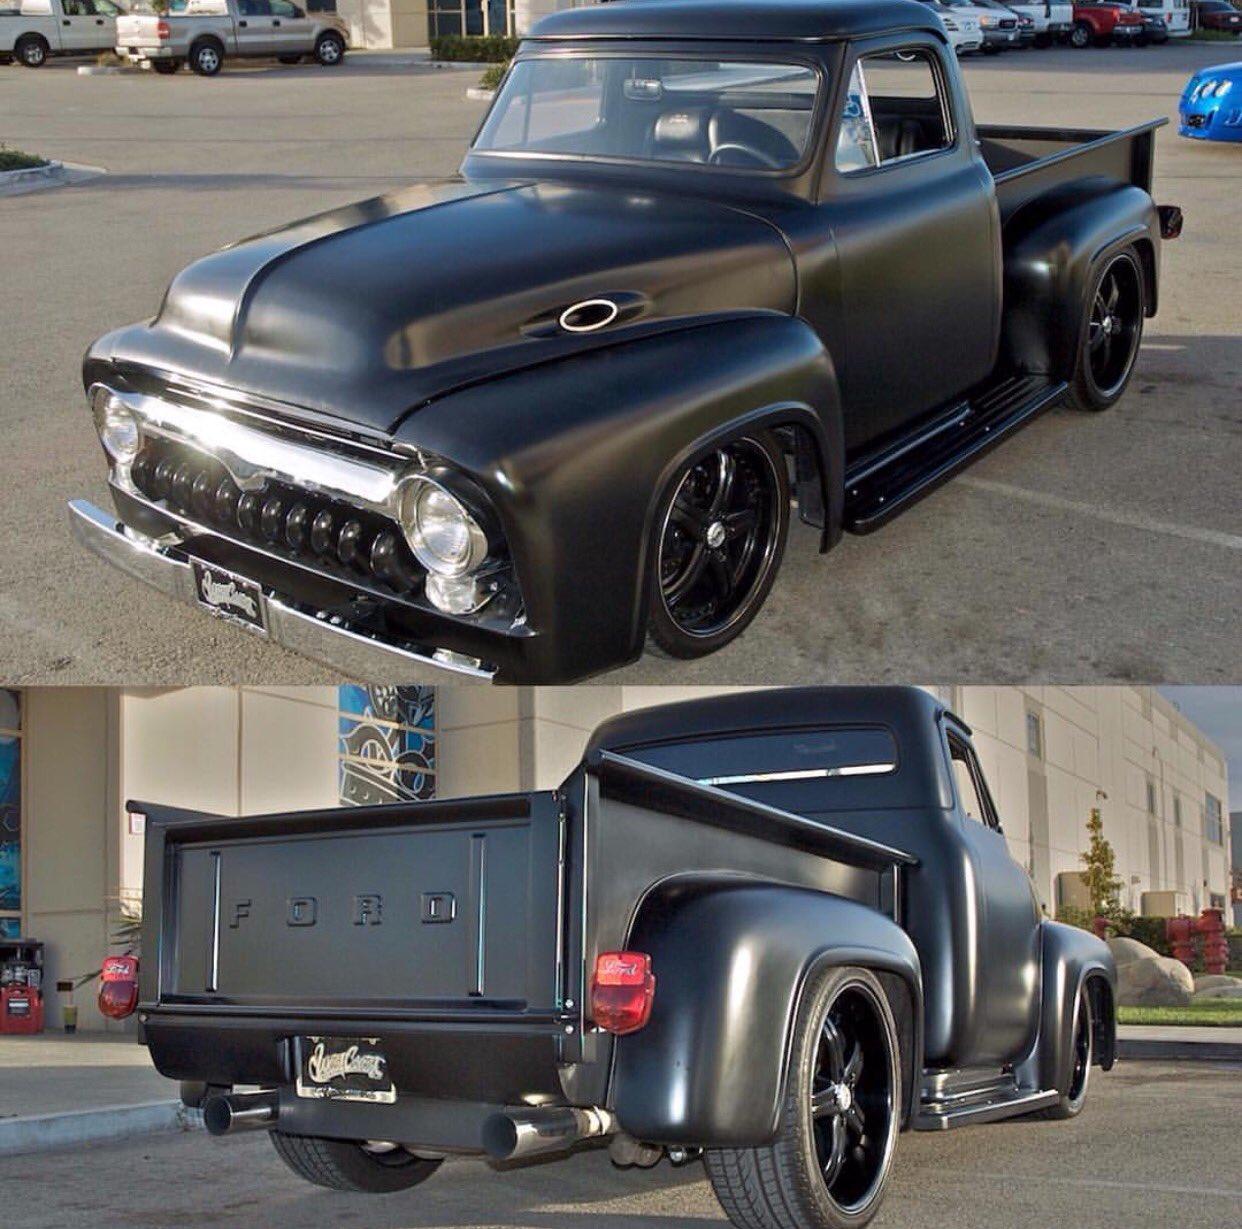 """West Coast Customs Cars For Sale >> West Coast Customs on Twitter: """"1955 Ford F100 